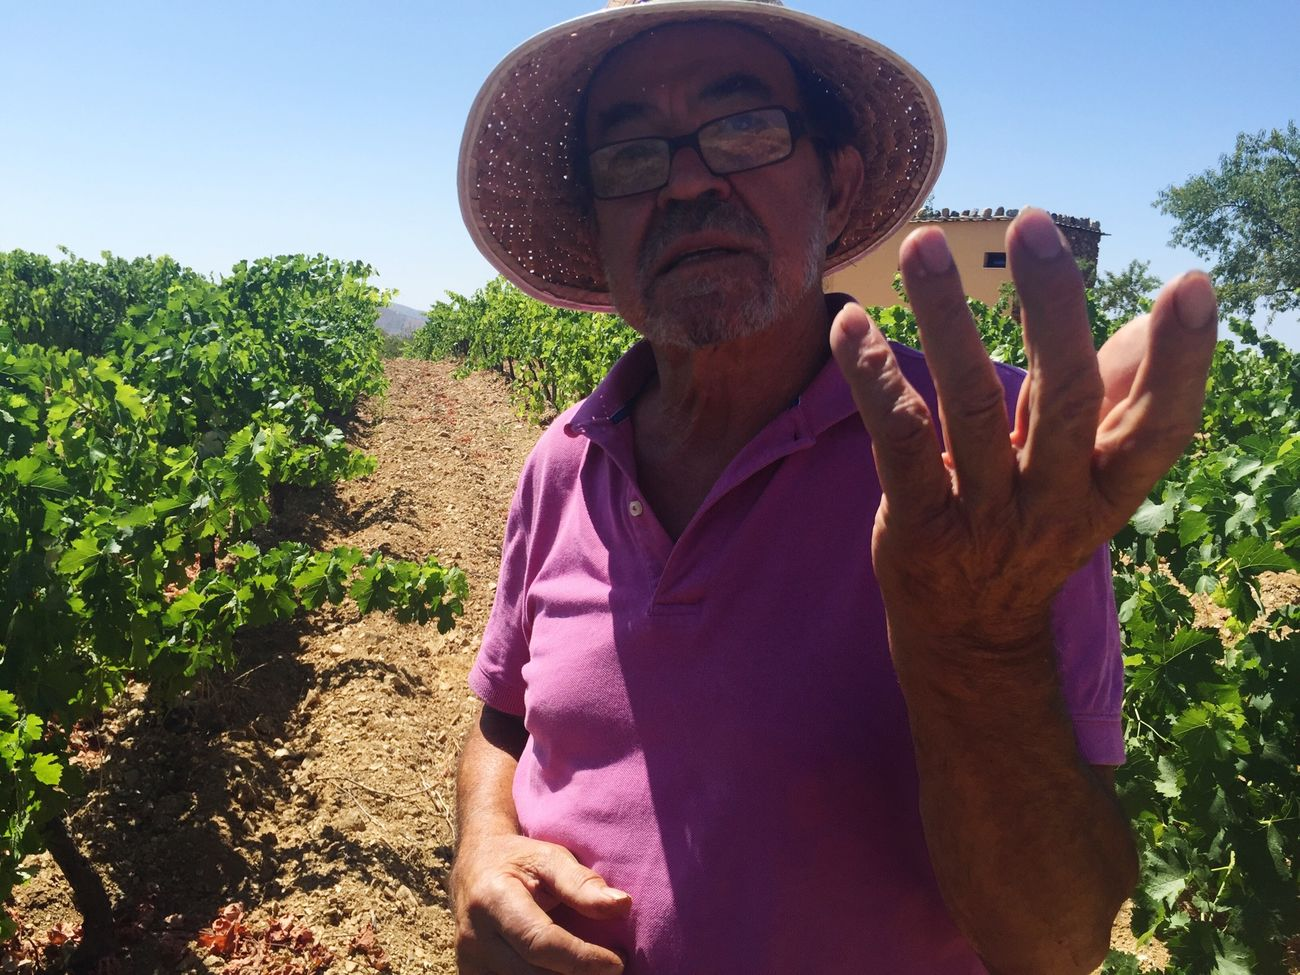 Unlikely Heroes Manuel, wine maker who has been producing natural wines in the mountains above Granada for the past 30 years. He has been advocating sensible approach to nature all his life, trying to stop the burning of the cork trees for fuel in the region among other things.